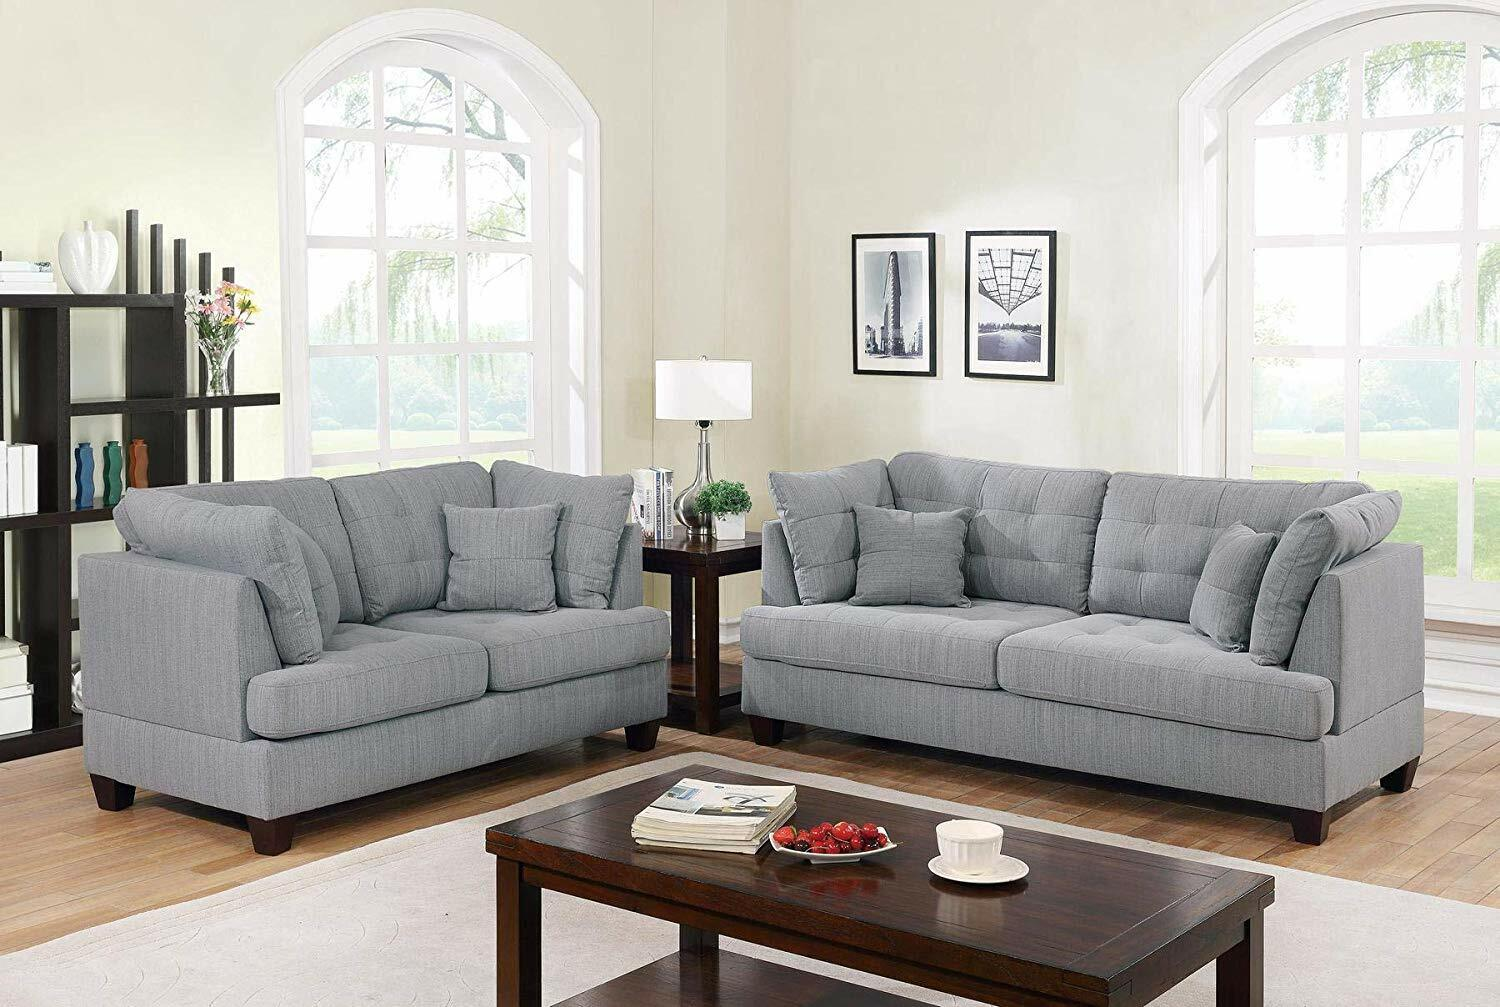 Picture of: Contemporary Upholstered 84 2 Inch Linen Sofa With Pillows 3 Seat Dark Grey For Sale Online Ebay